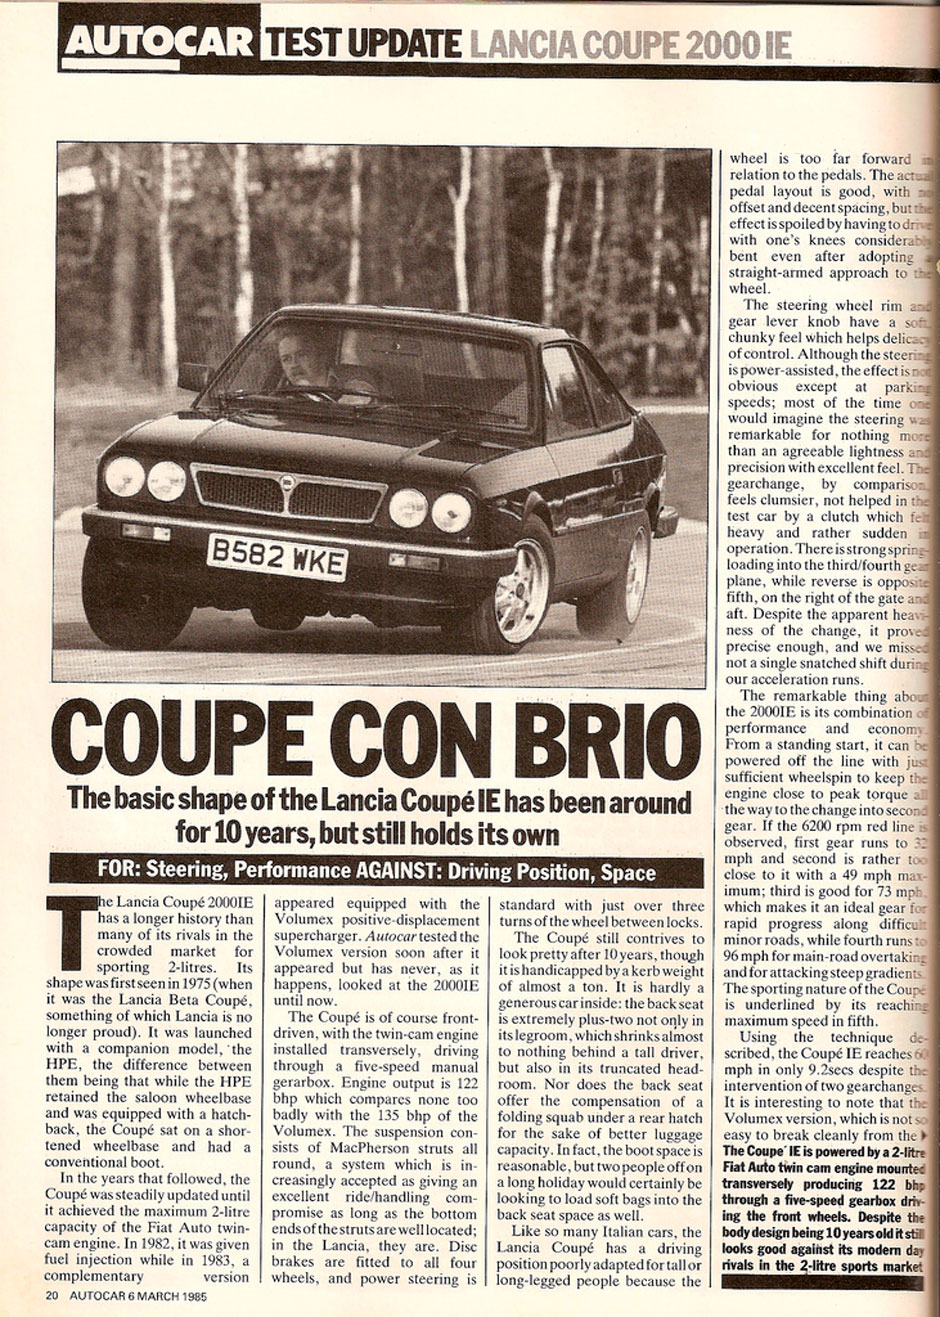 Lancia Coupe 2000 IE